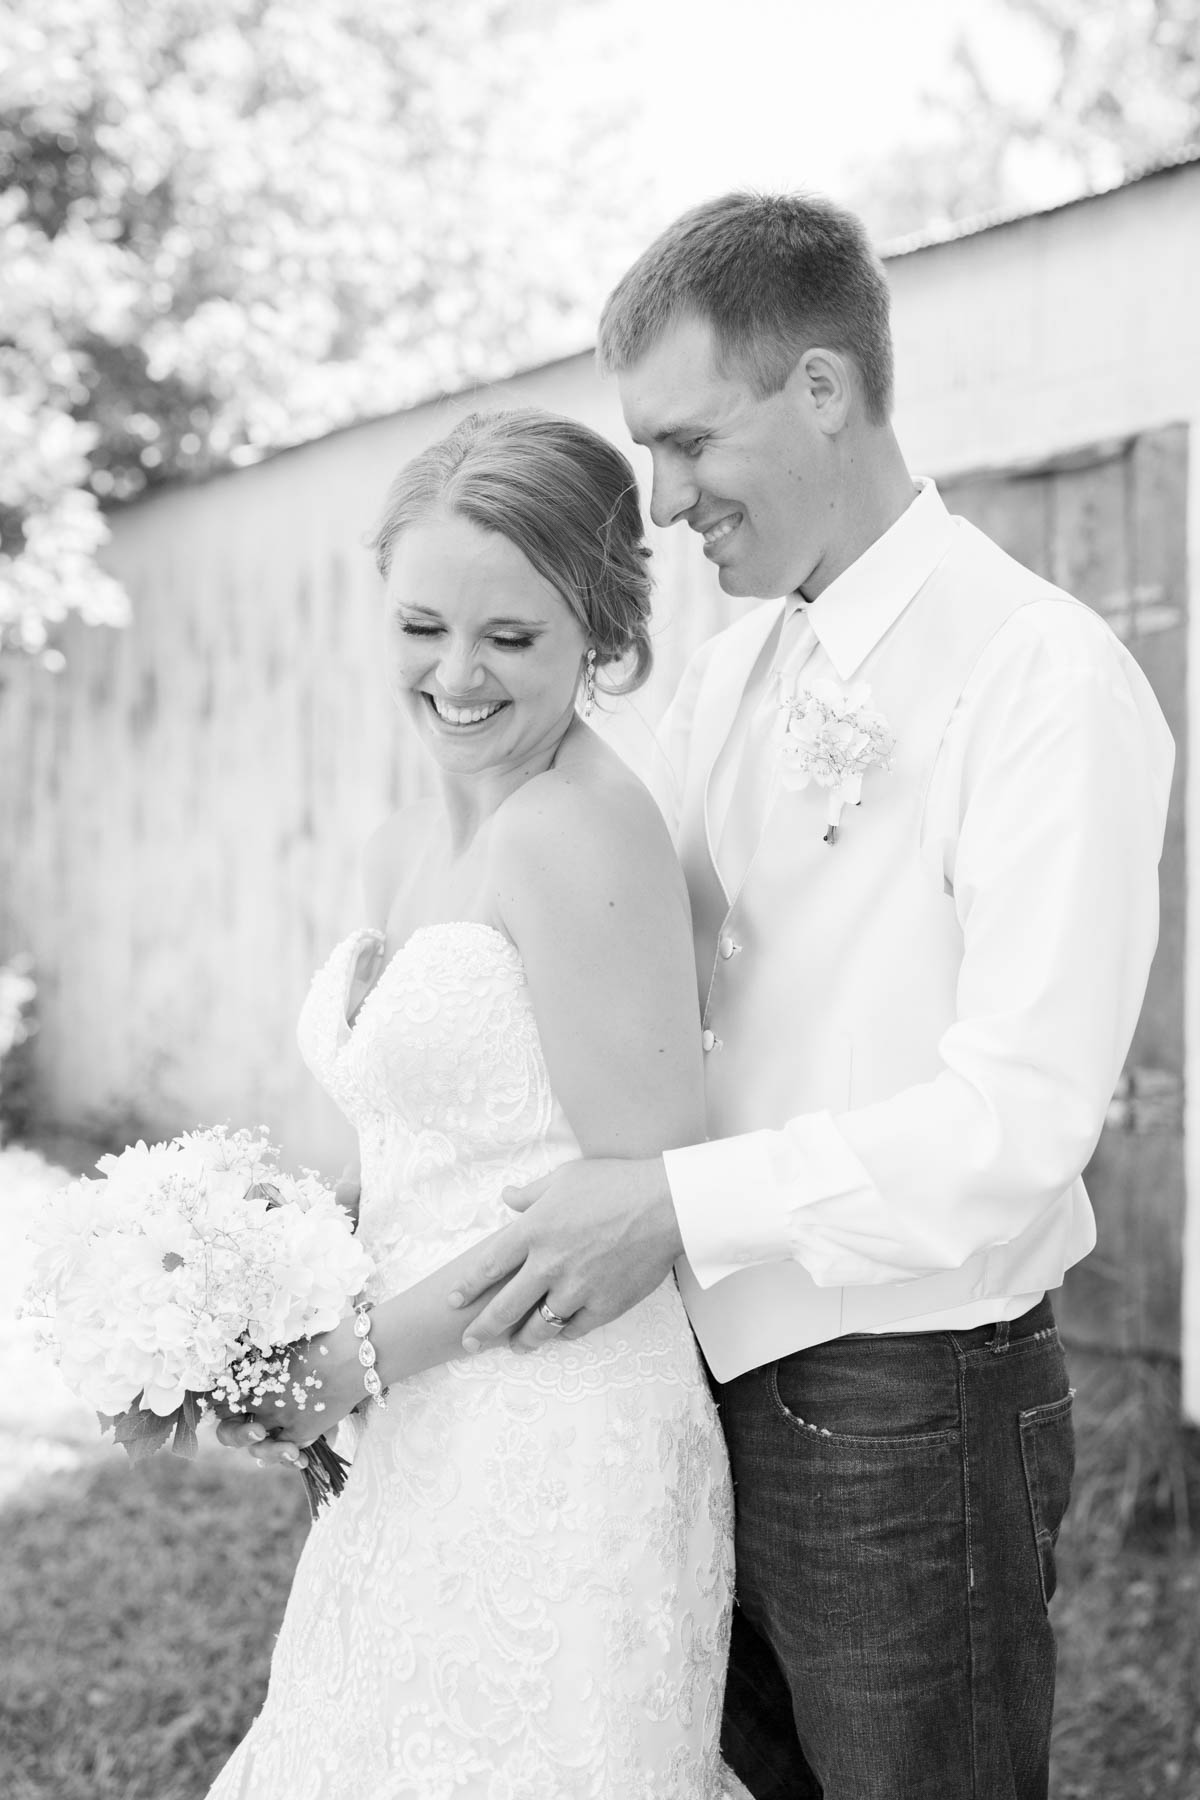 shotbychelsea_wedding_photography_blog-33.jpg